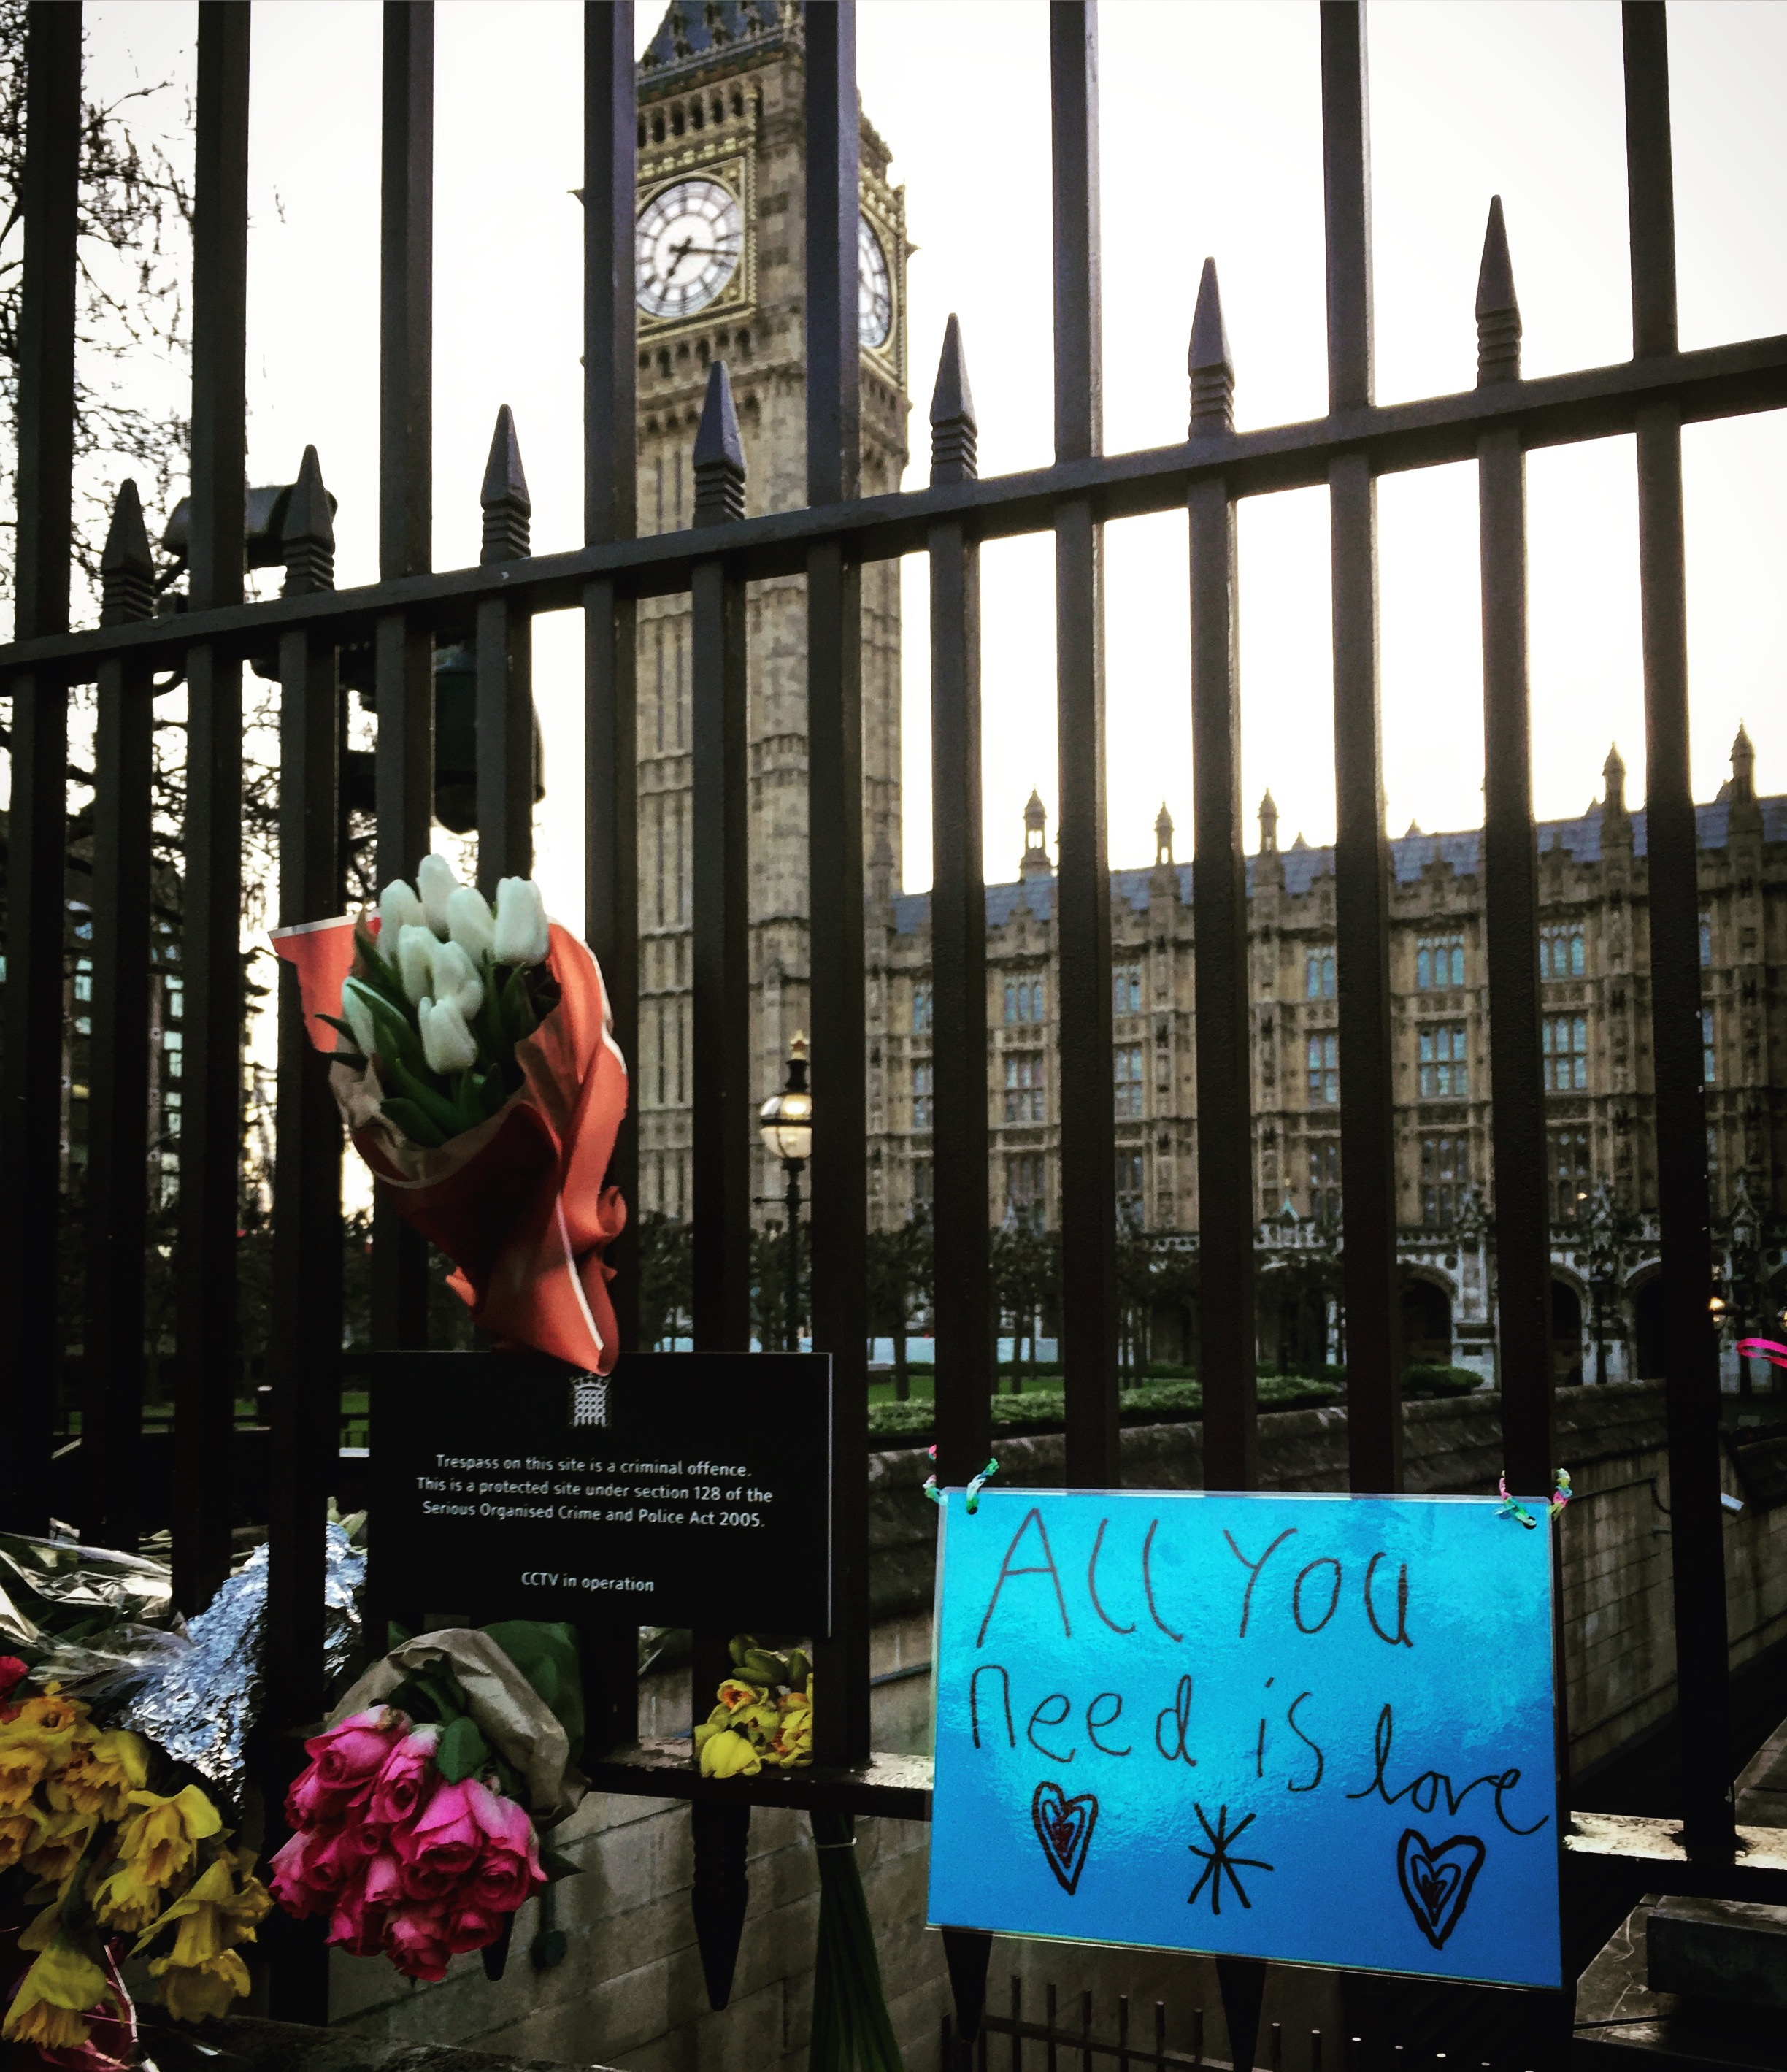 A few of the flowers and messages left outside the gates of Parliament after the March 22 attack.